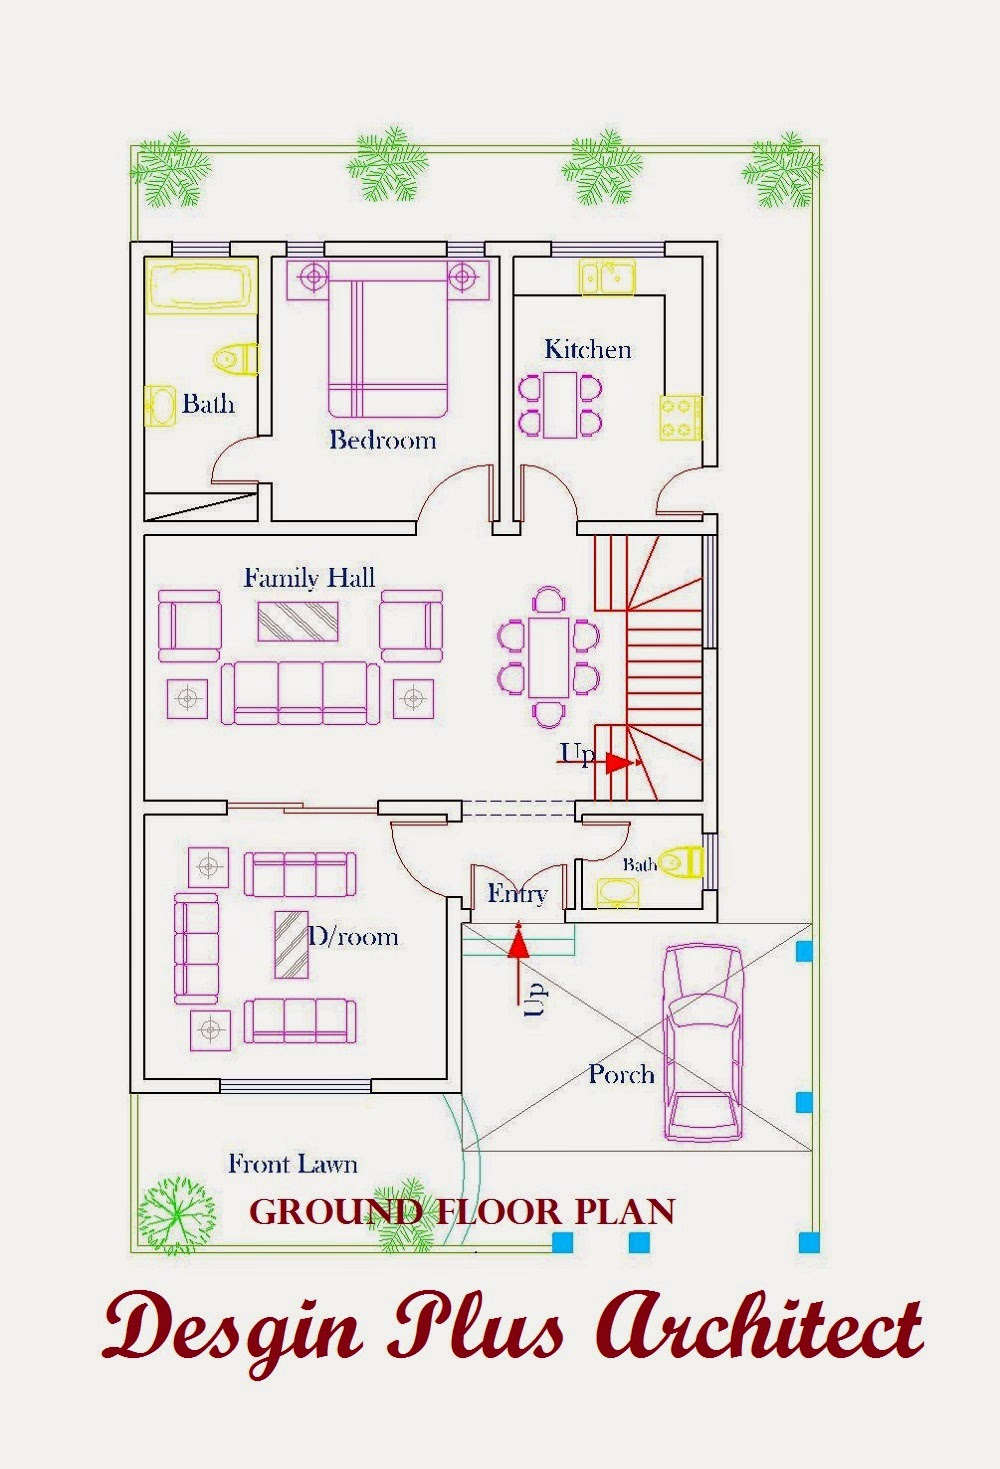 Home plans in pakistan home decor architect designer for House layout plan